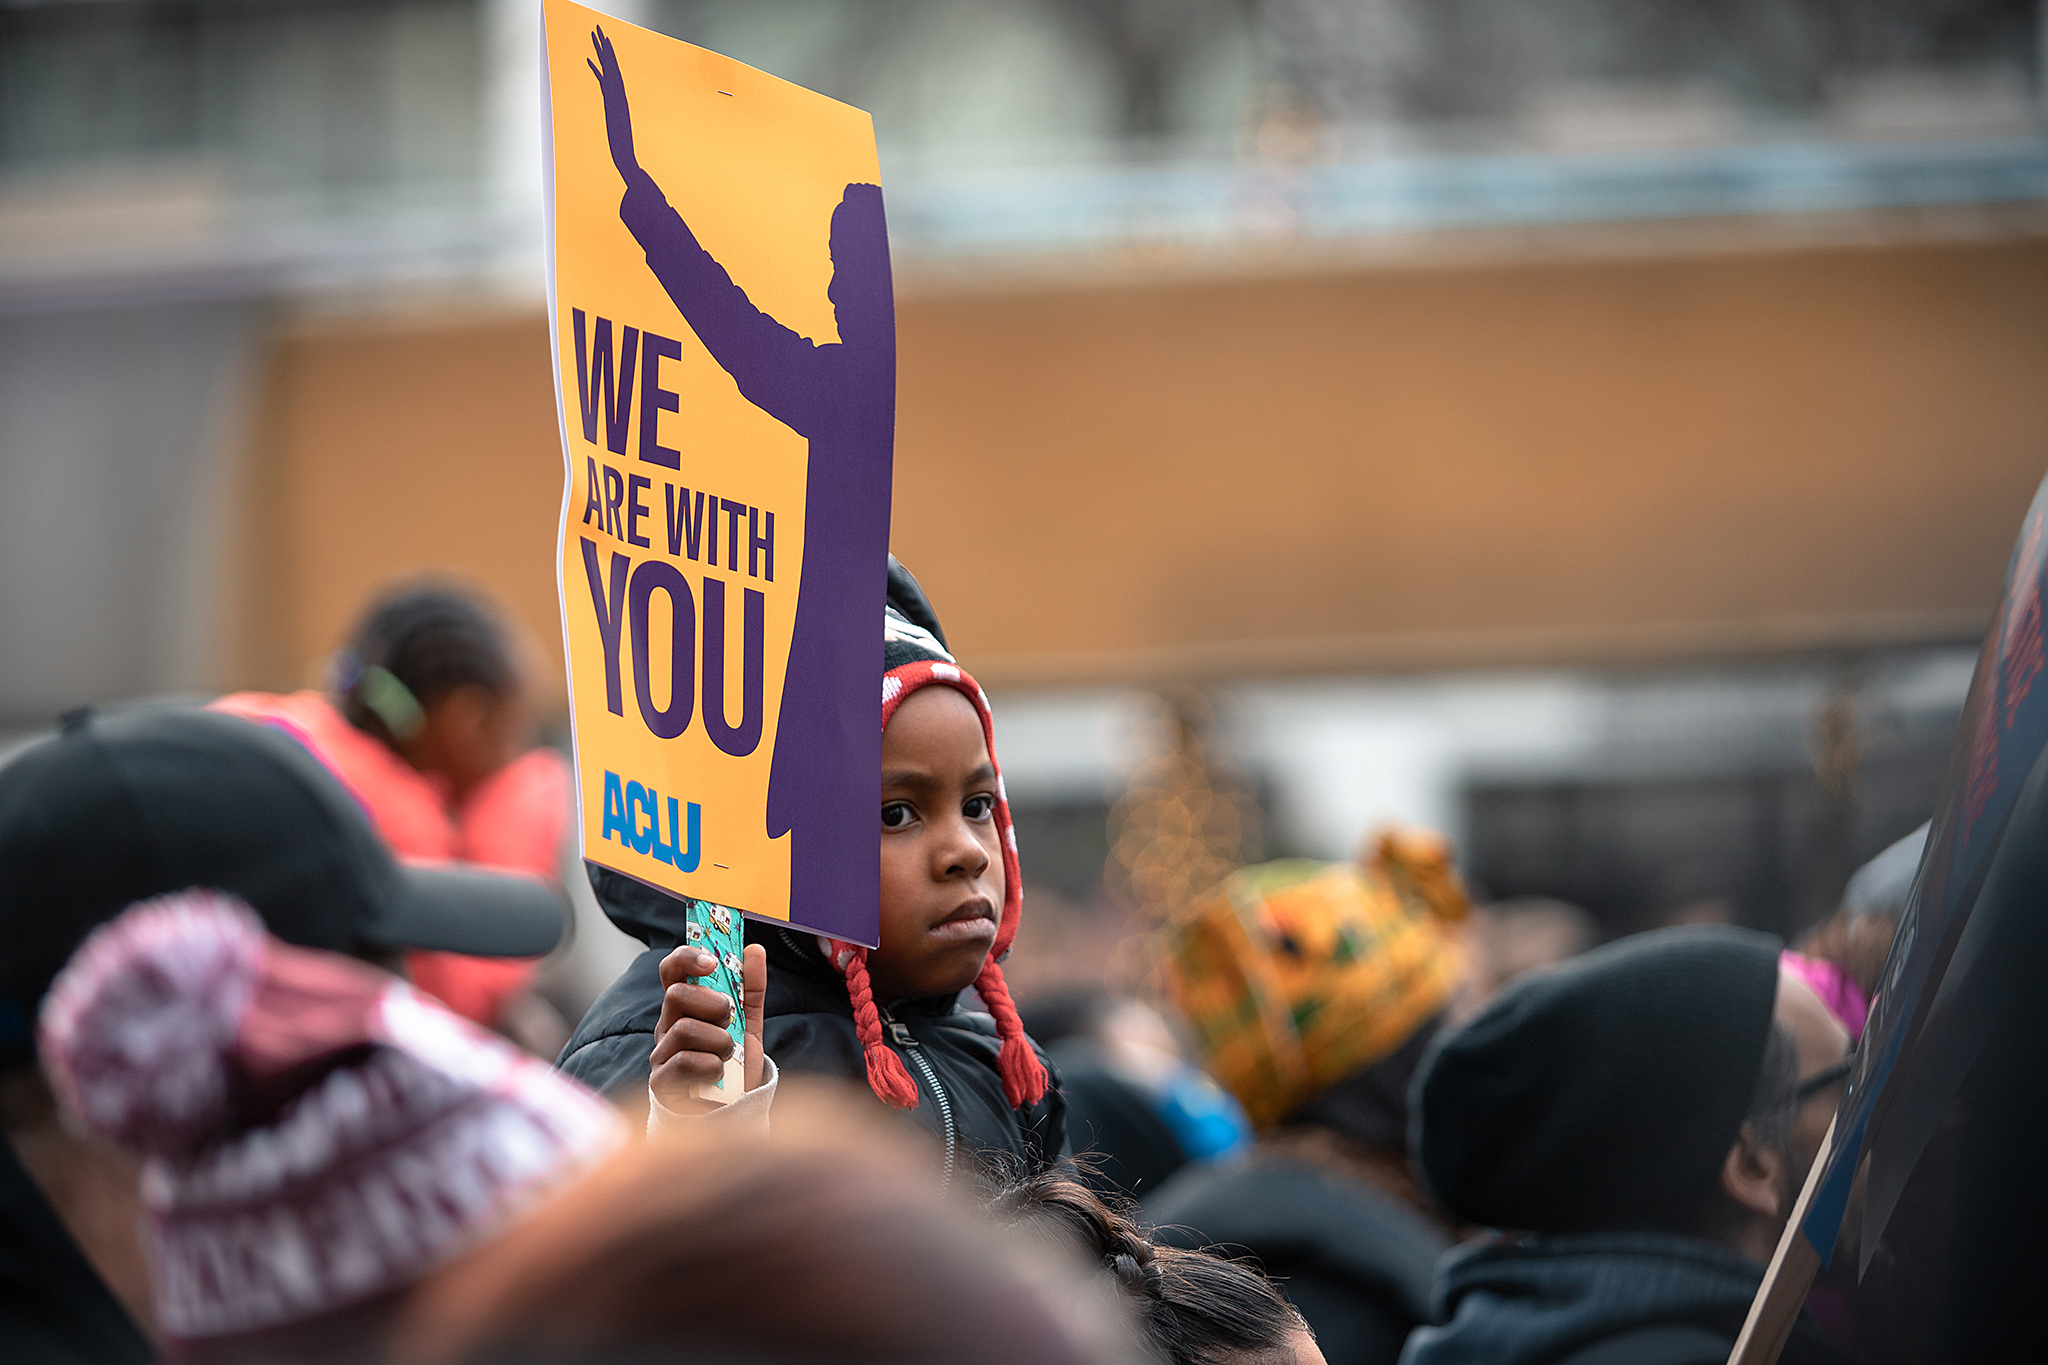 The Womxn's March Unites with the MLK March to Bring Change